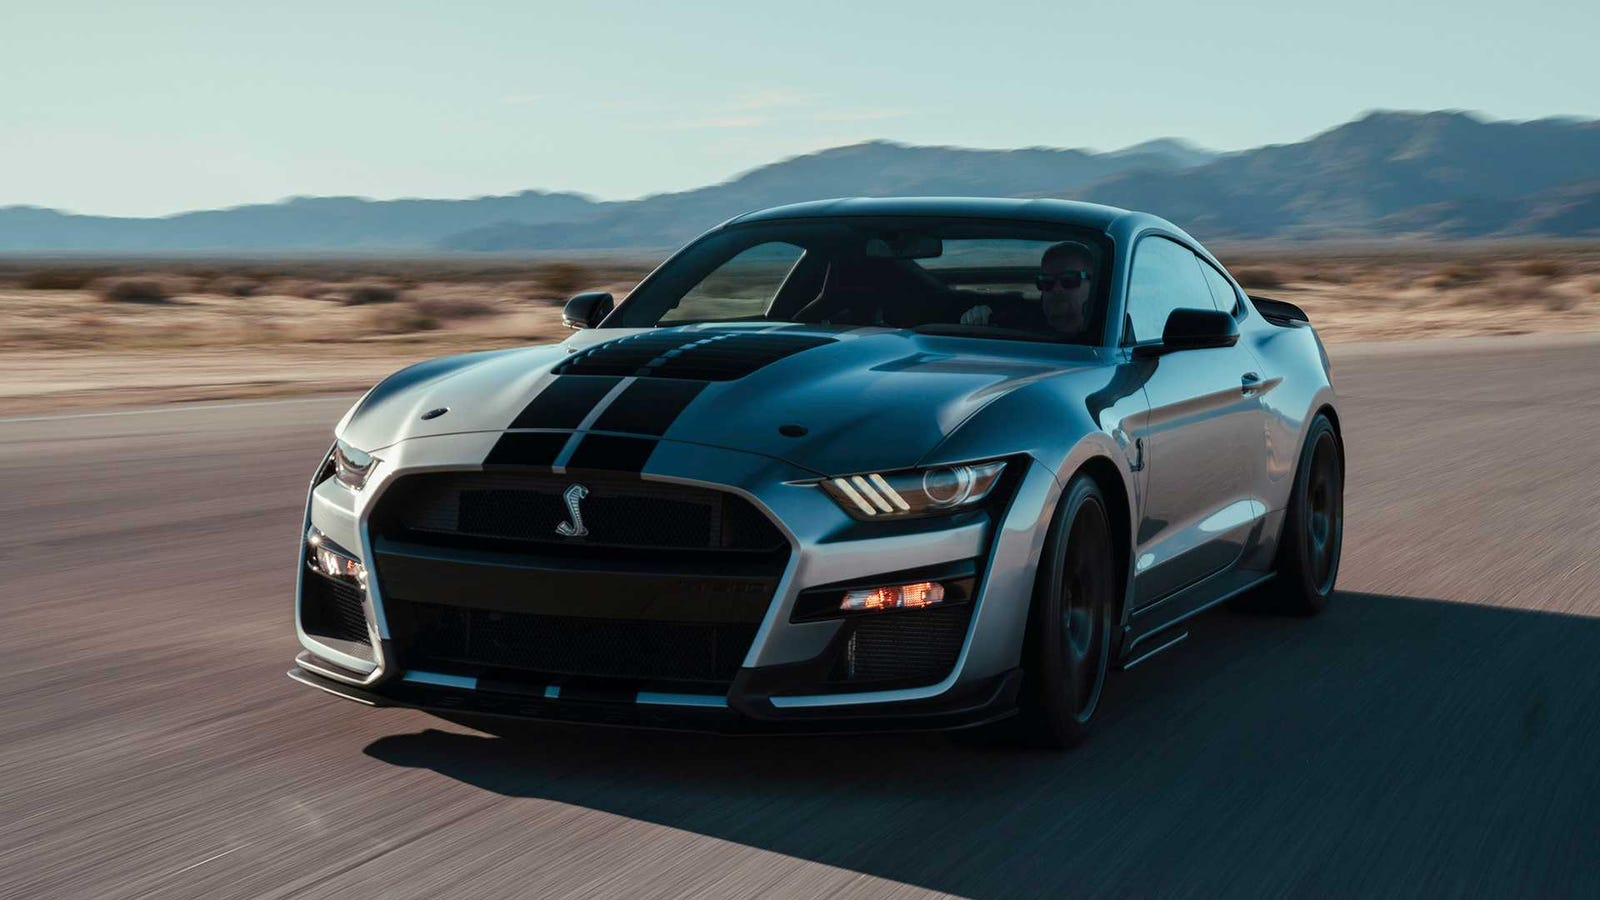 The 2020 ford mustang shelby gt500 will slay hellcats and camaros with at least 700 hp